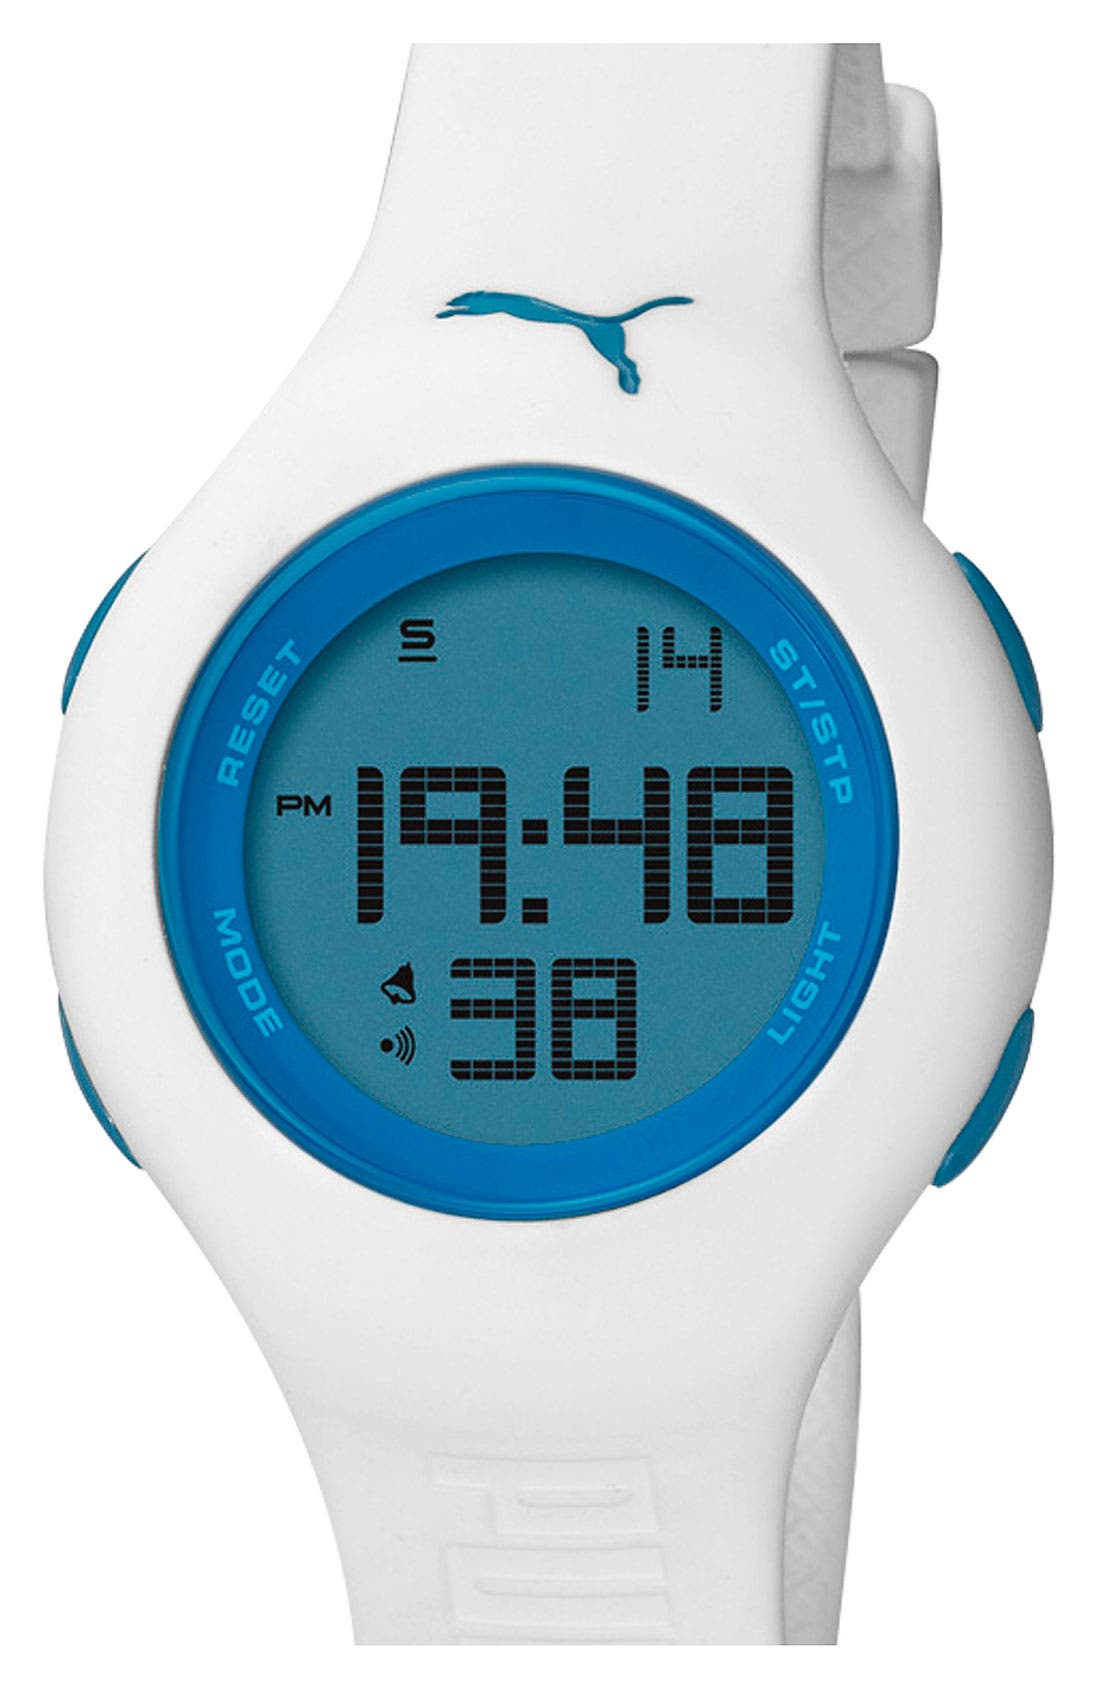 Main Image - PUMA 'Loop' Digital Chronograph Watch, 44mm